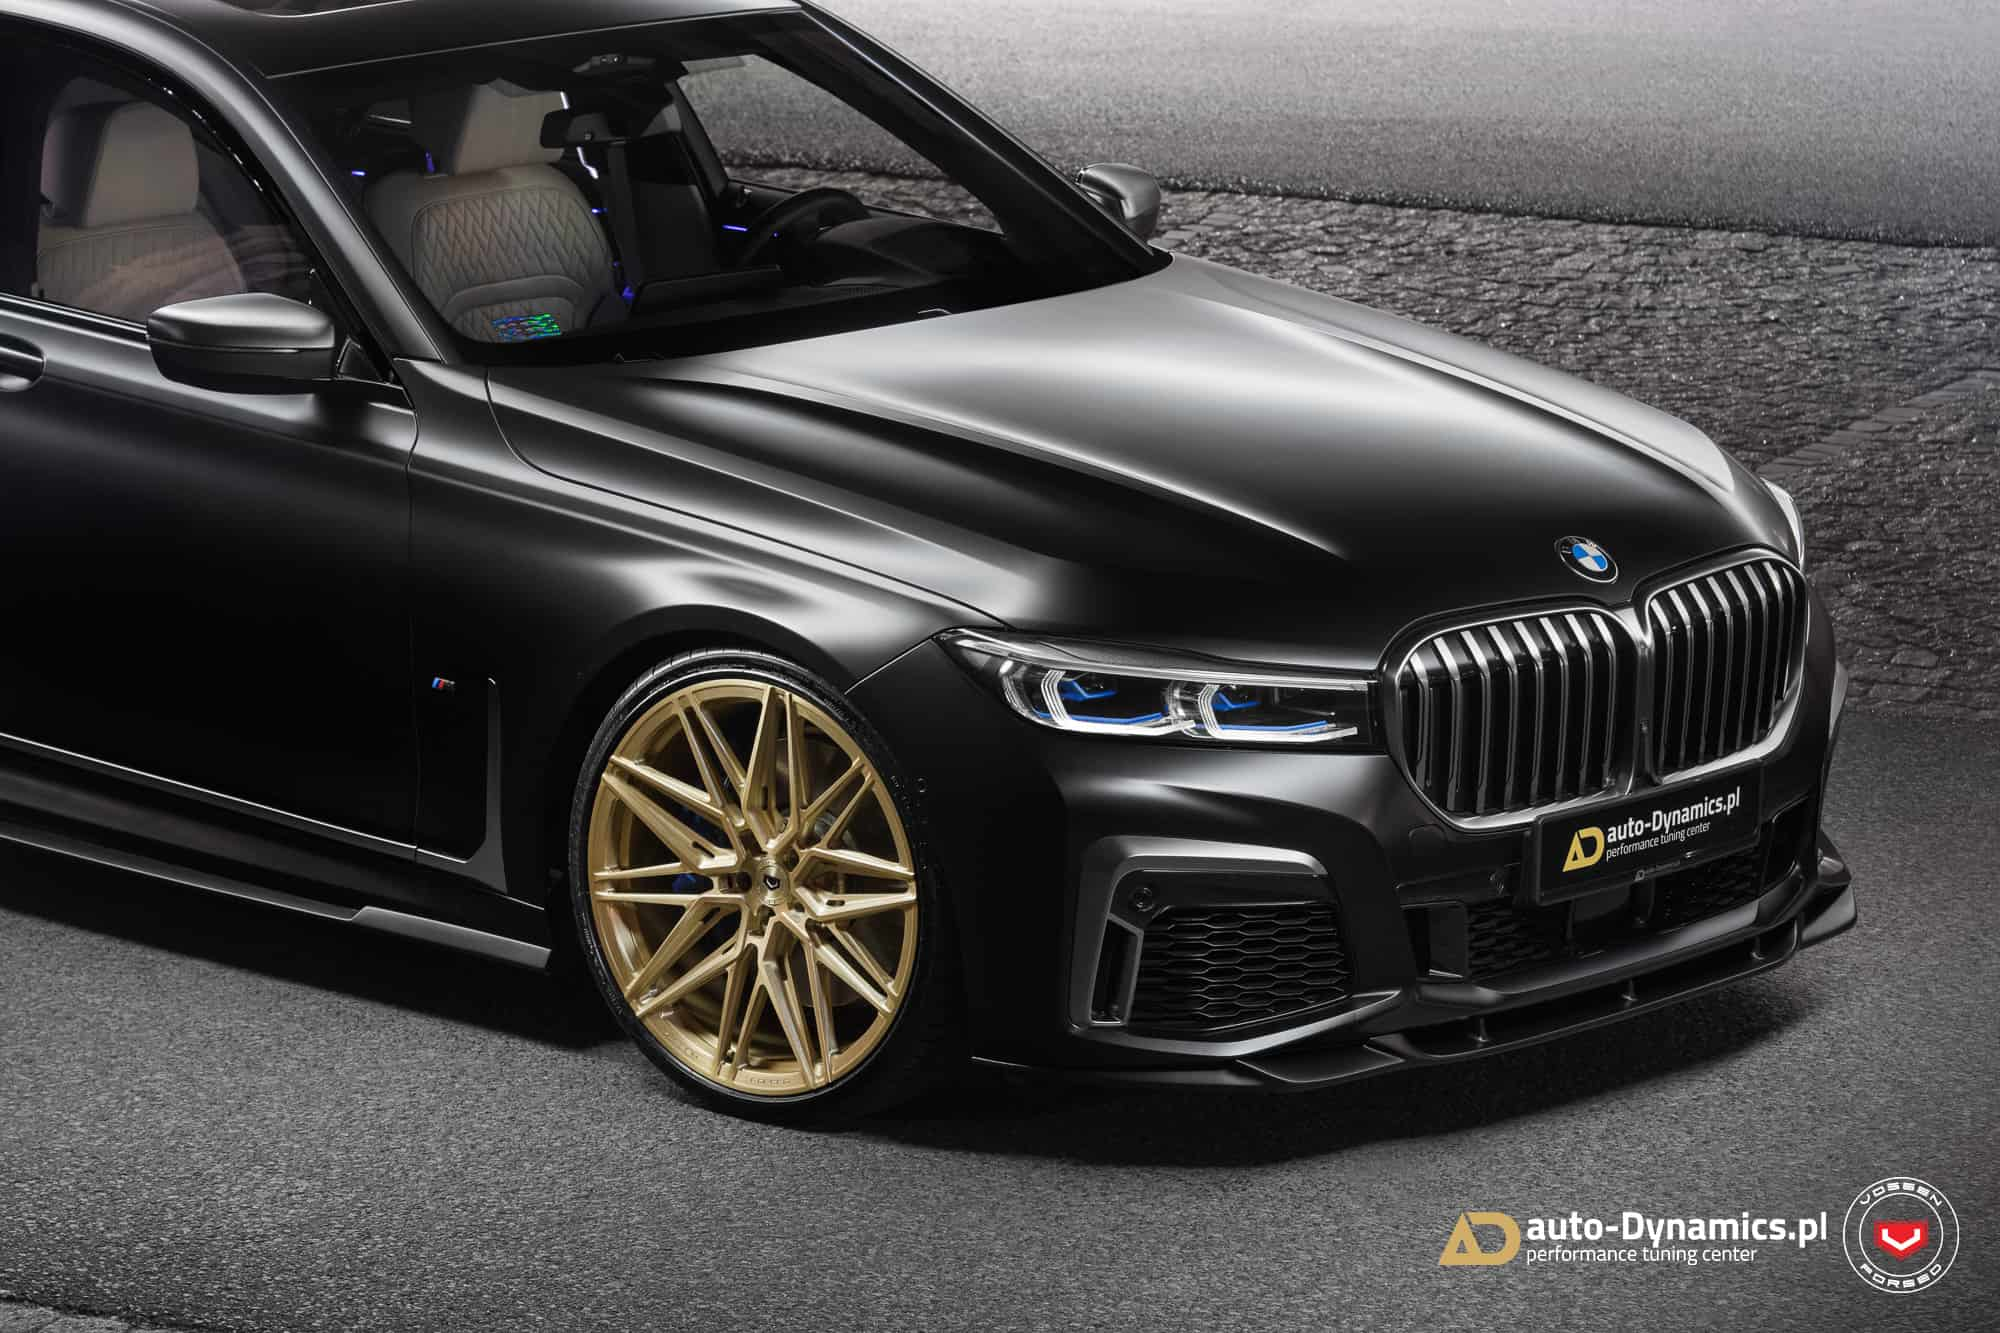 BMW M760Li with new Vossen Wheels and Paradigm aero kit